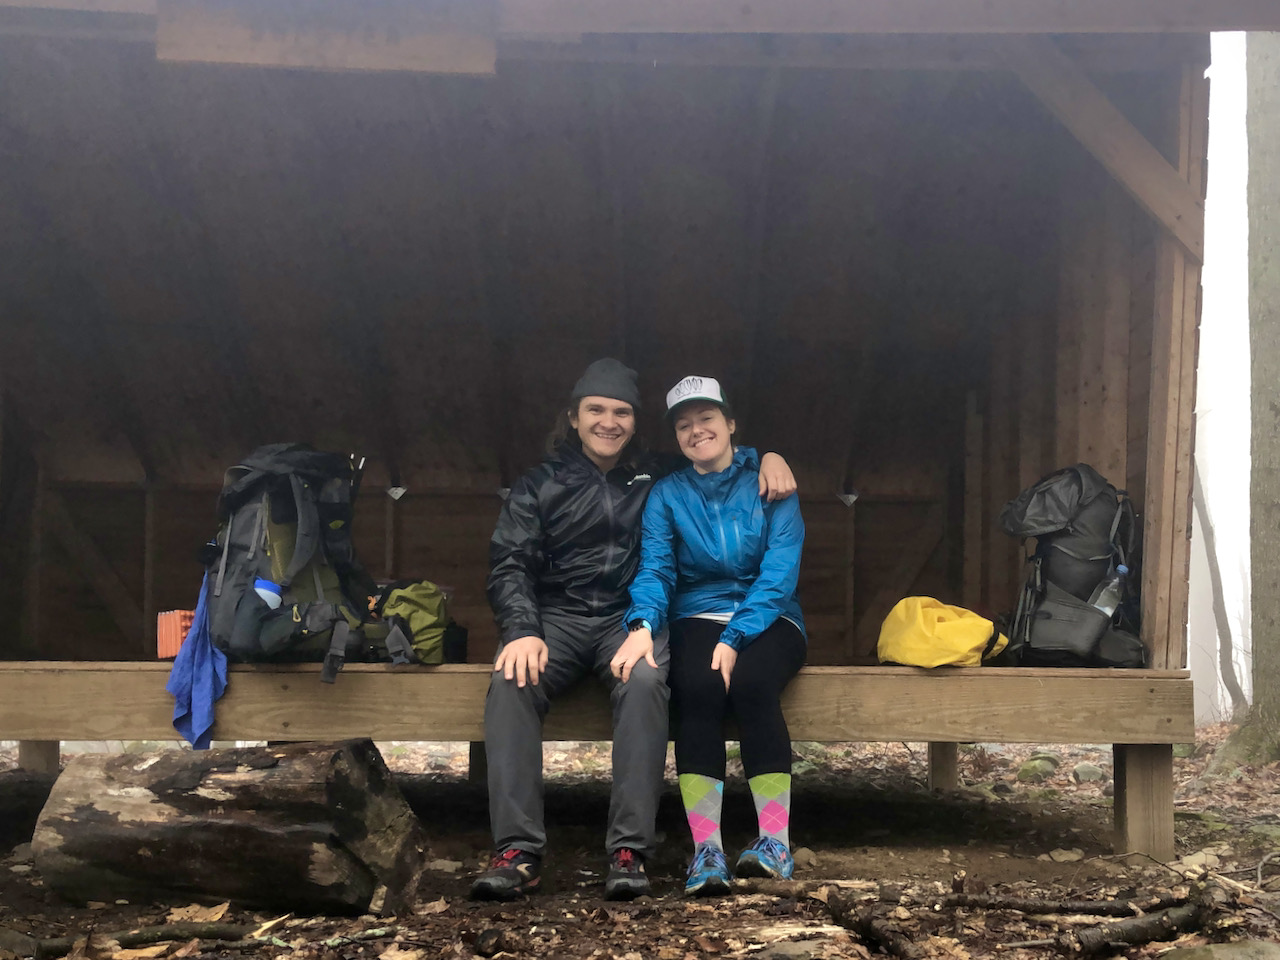 Photo of Brett and Becky at the Sprout Point Shelter surrounded by backpacks